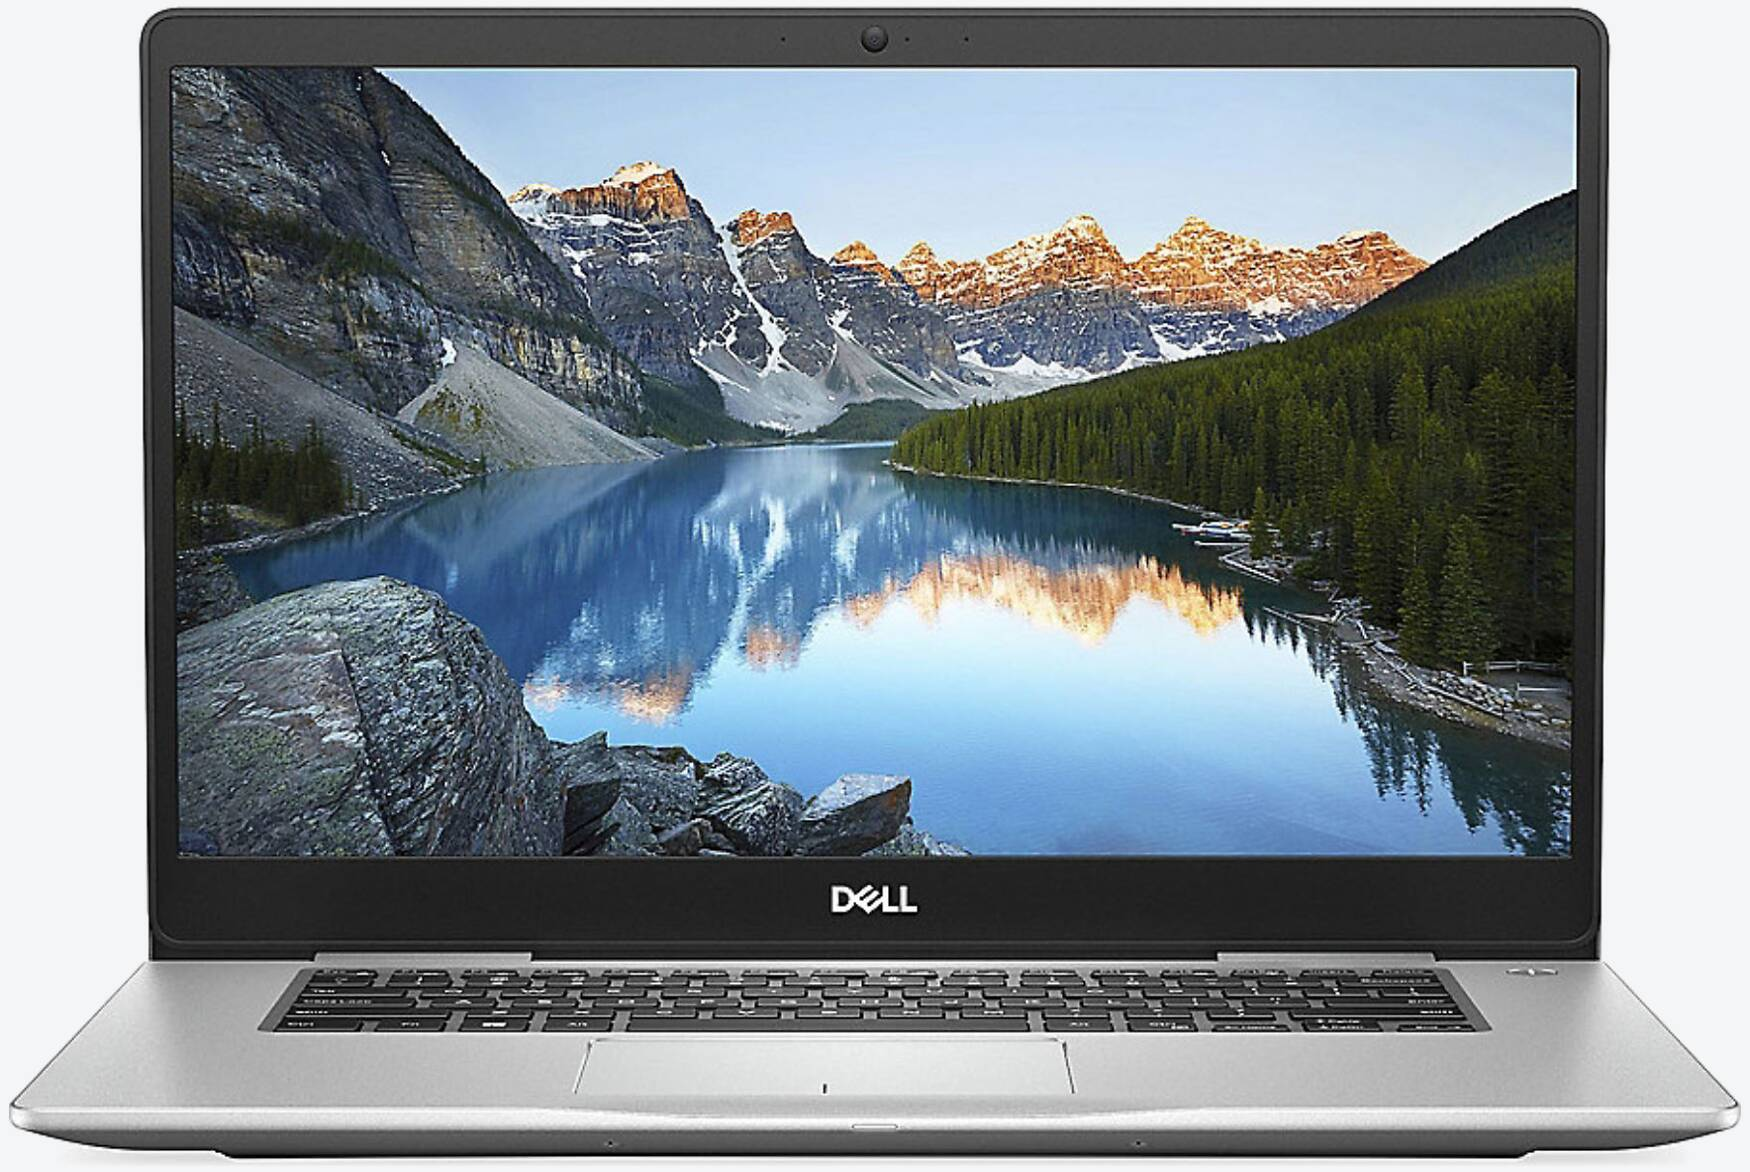 Dell Inspiron 15 7570 (7X79N) 4k Touch